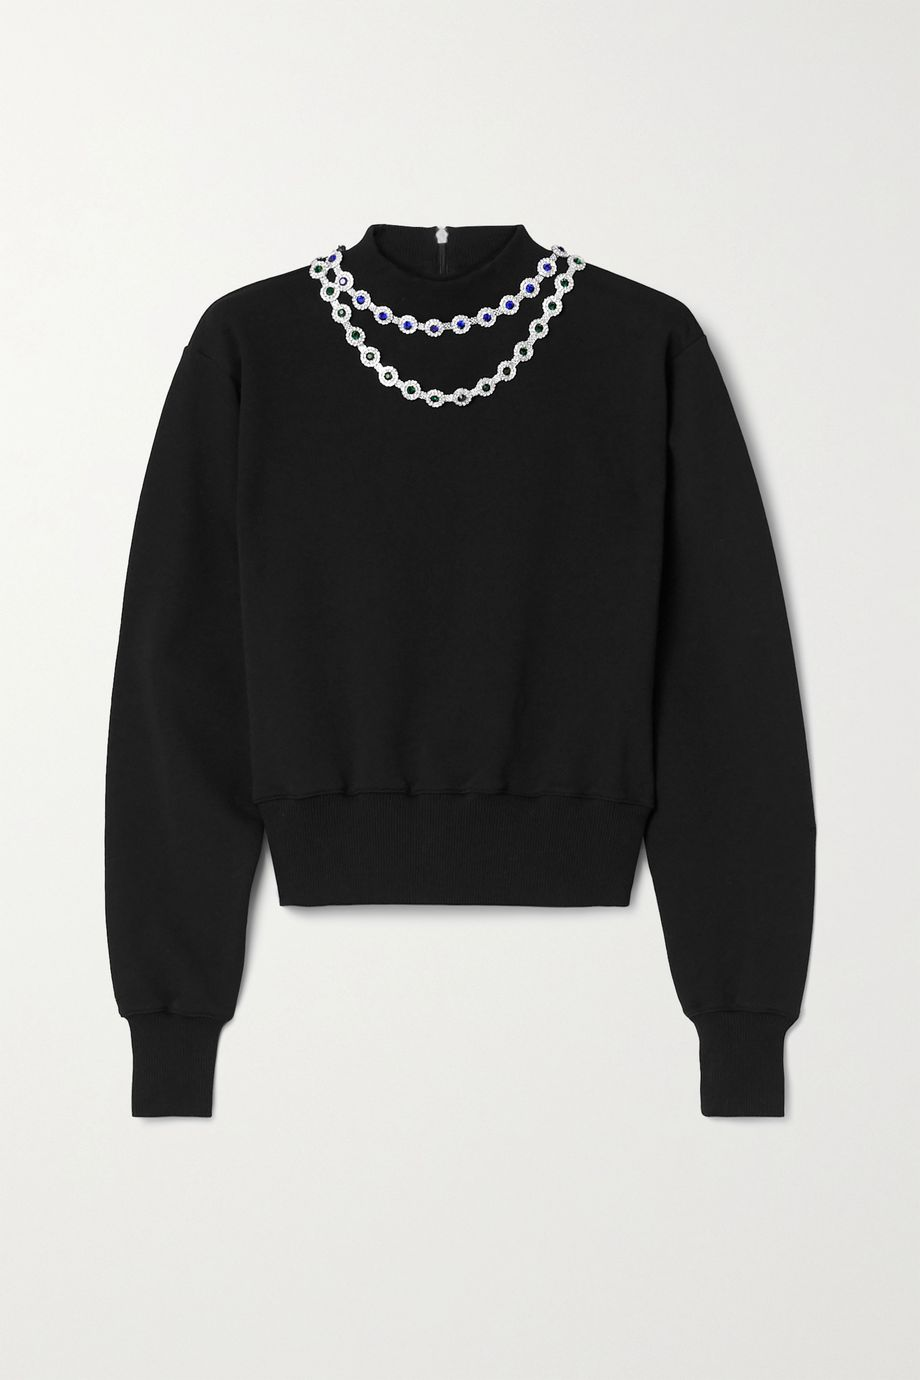 Christopher Kane Crystal-embellished cotton-jersey sweatshirt